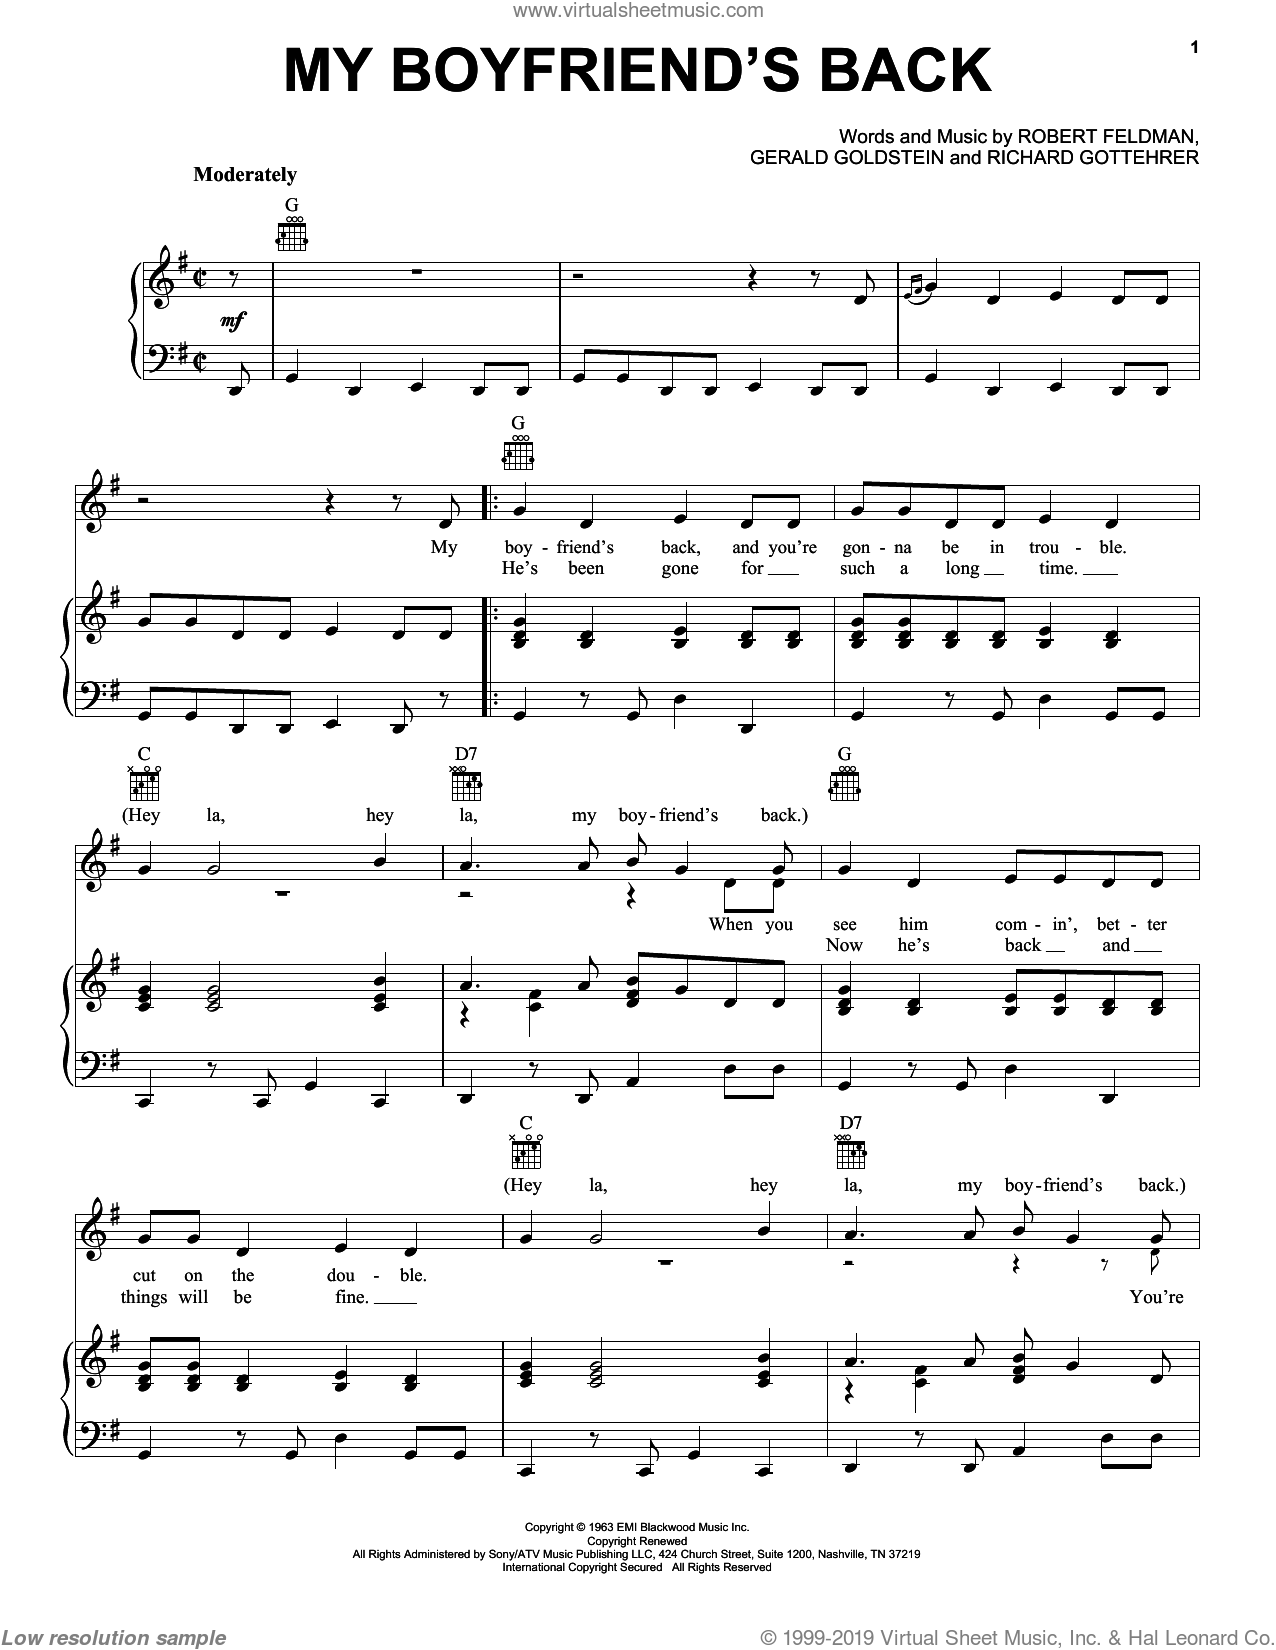 My Boyfriend's Back sheet music for voice, piano or guitar by Robert Feldman, The Angels and Richard Gottehrer. Score Image Preview.